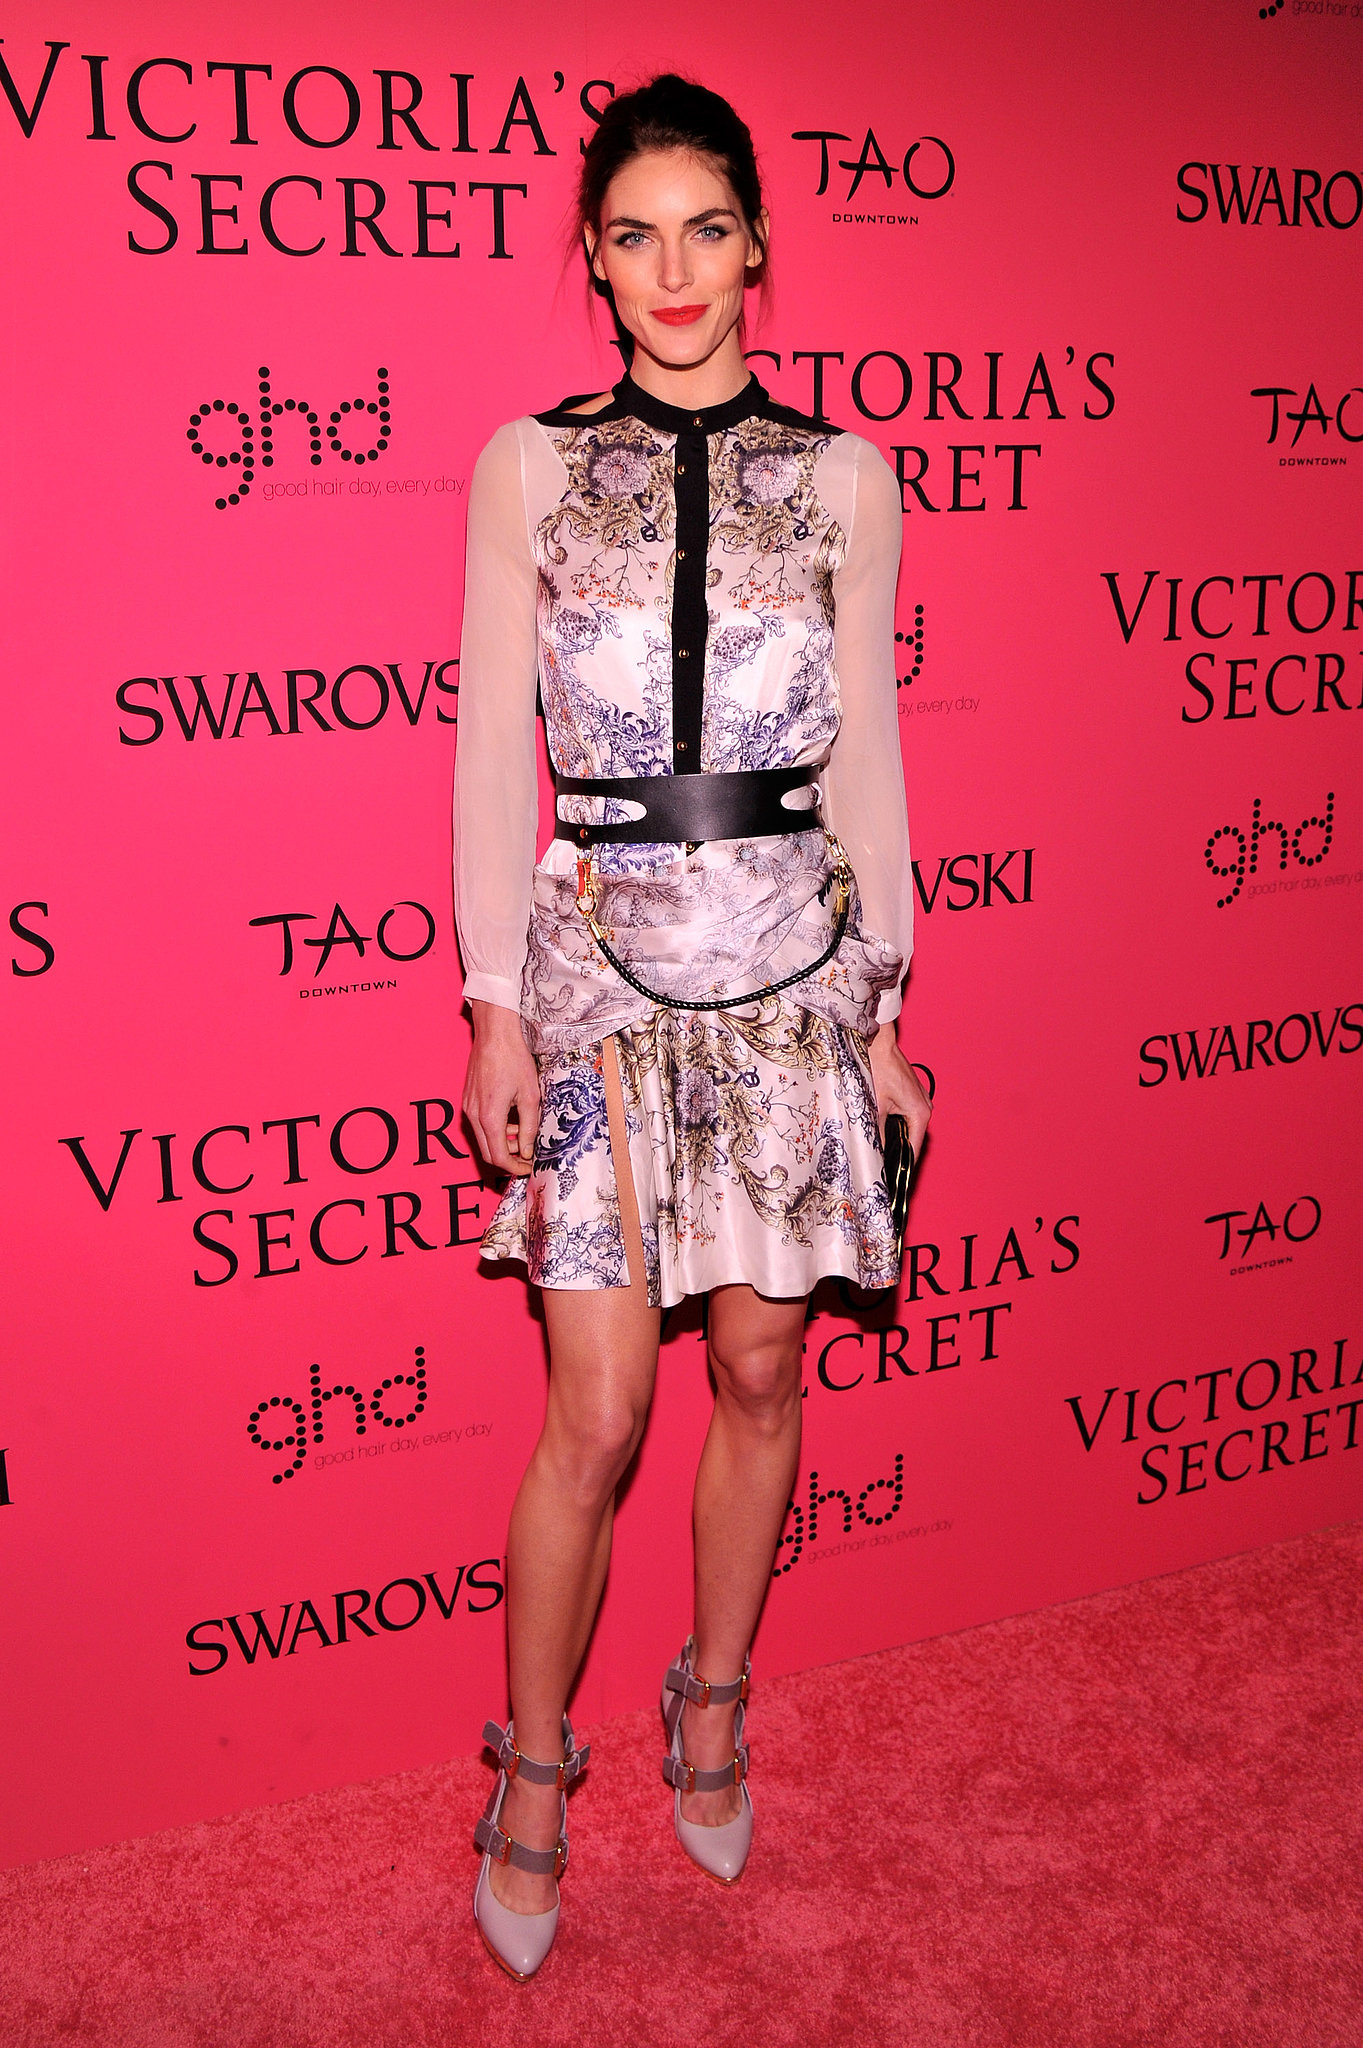 Hilary Rhoda in Prabal Gurung at the Victoria's